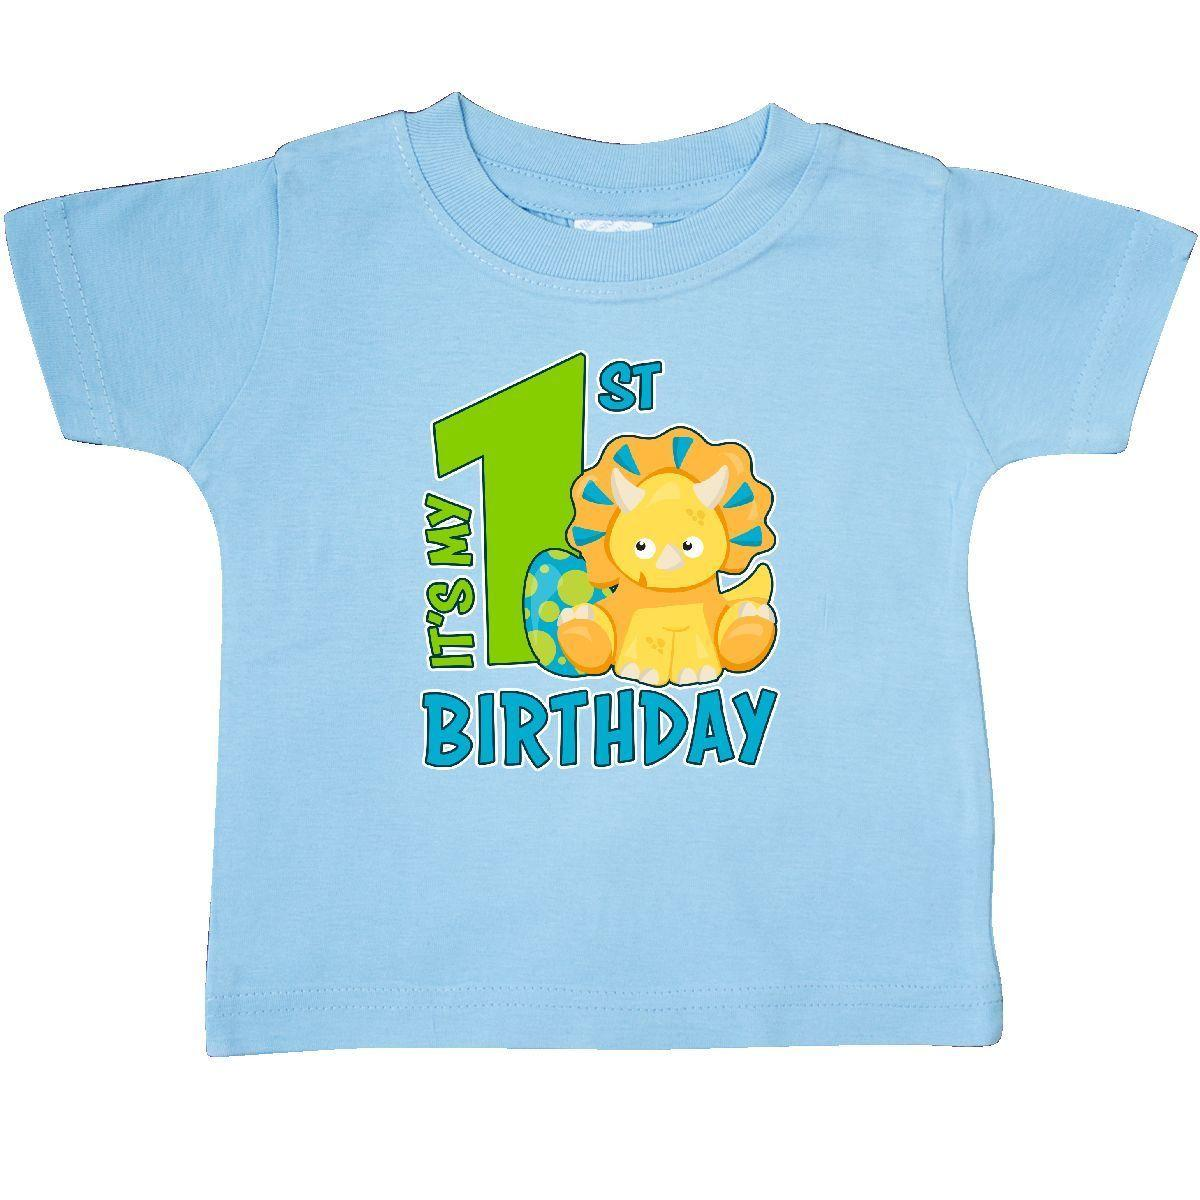 a00ab907 Inktastic Its My 1st Birthday With Dinosaur Baby T Shirt Birthdays First  One 1 Funny Unisex Casual Tee Gift Latest T Shirts Design Best T Shirts  Design From ...